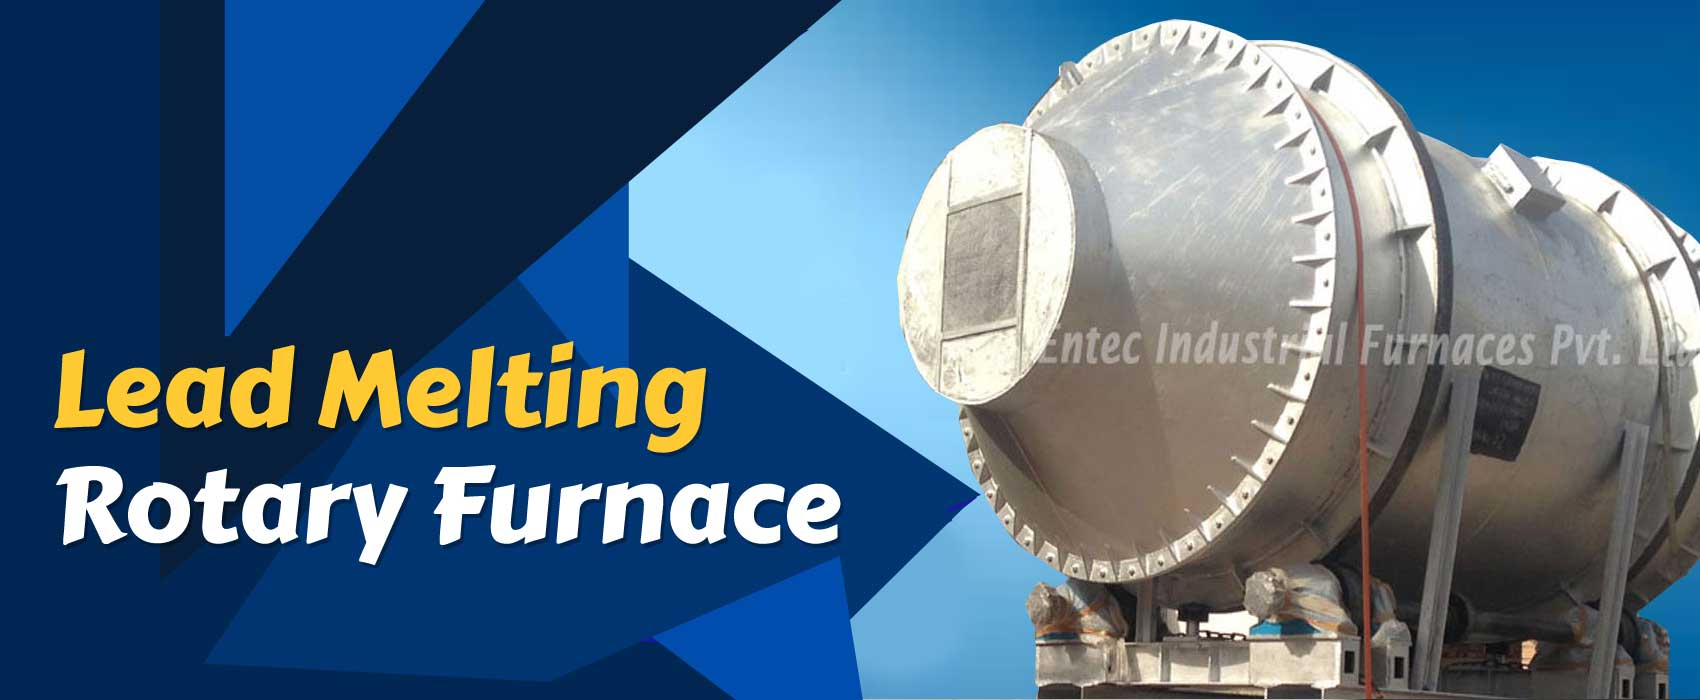 Lead Melting Rotary Furnace